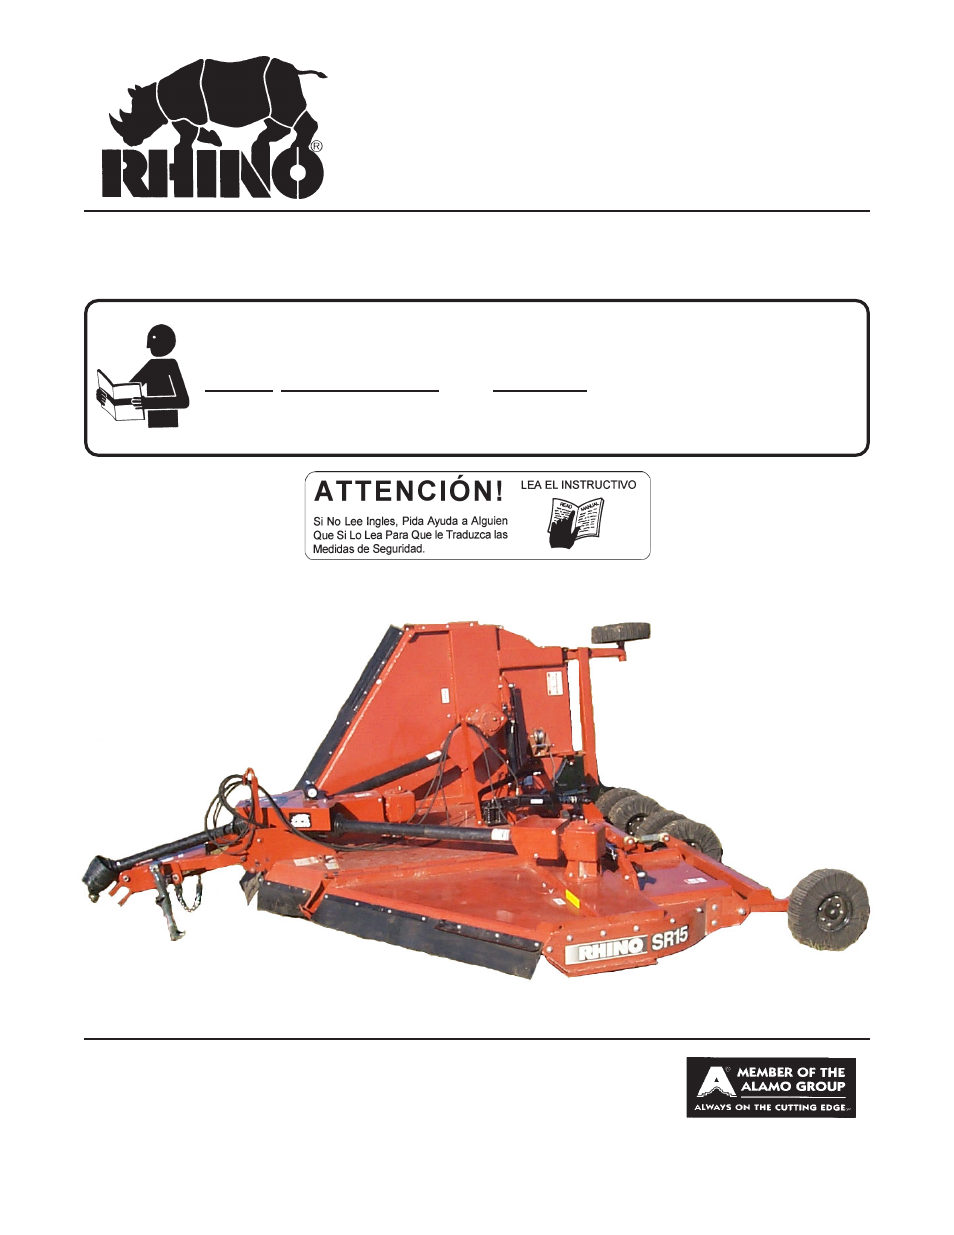 Servis-Rhino SR15M User Manual | 152 pages | Also for: SR10M